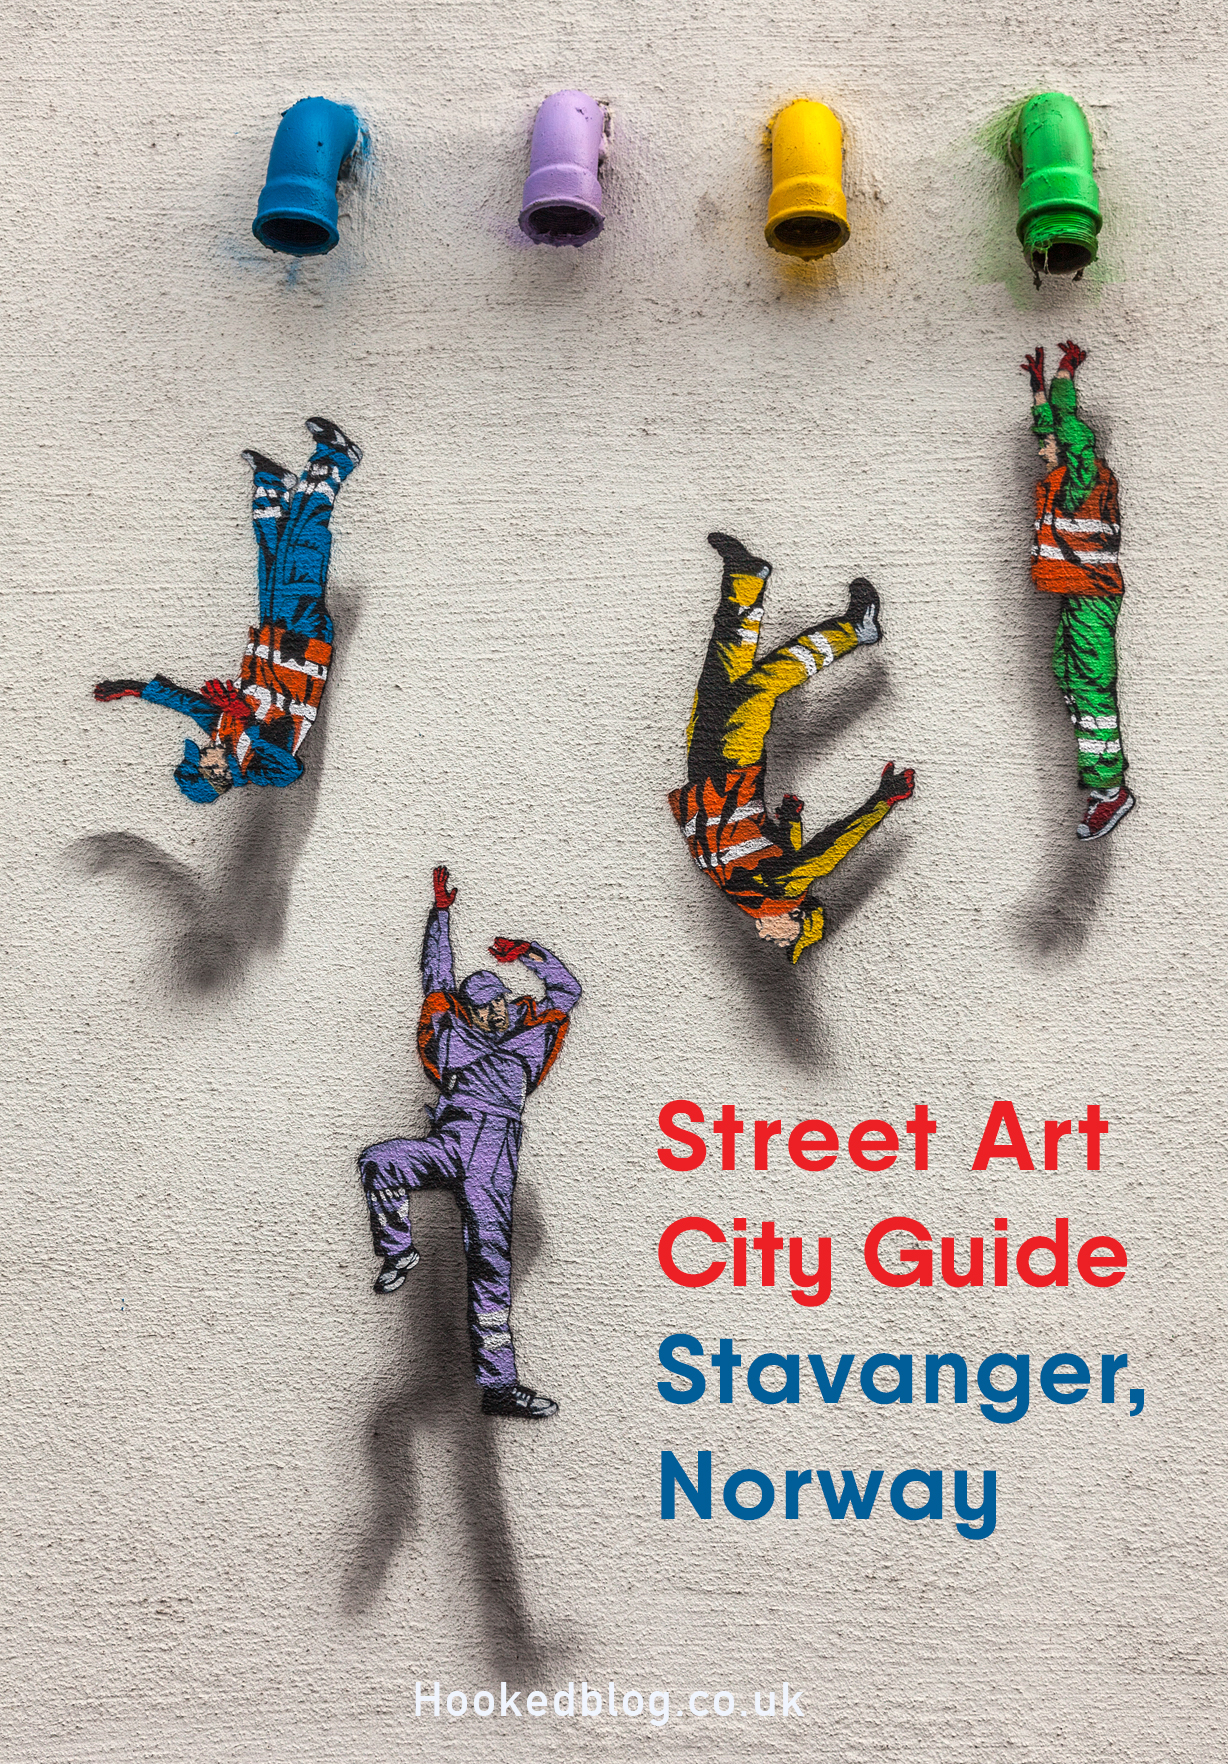 In this Hookedblog city guide, we will help you discover some of the very best street art in the Norwegian city of Stavanger. Location map included. #streetart #graffiti #travel